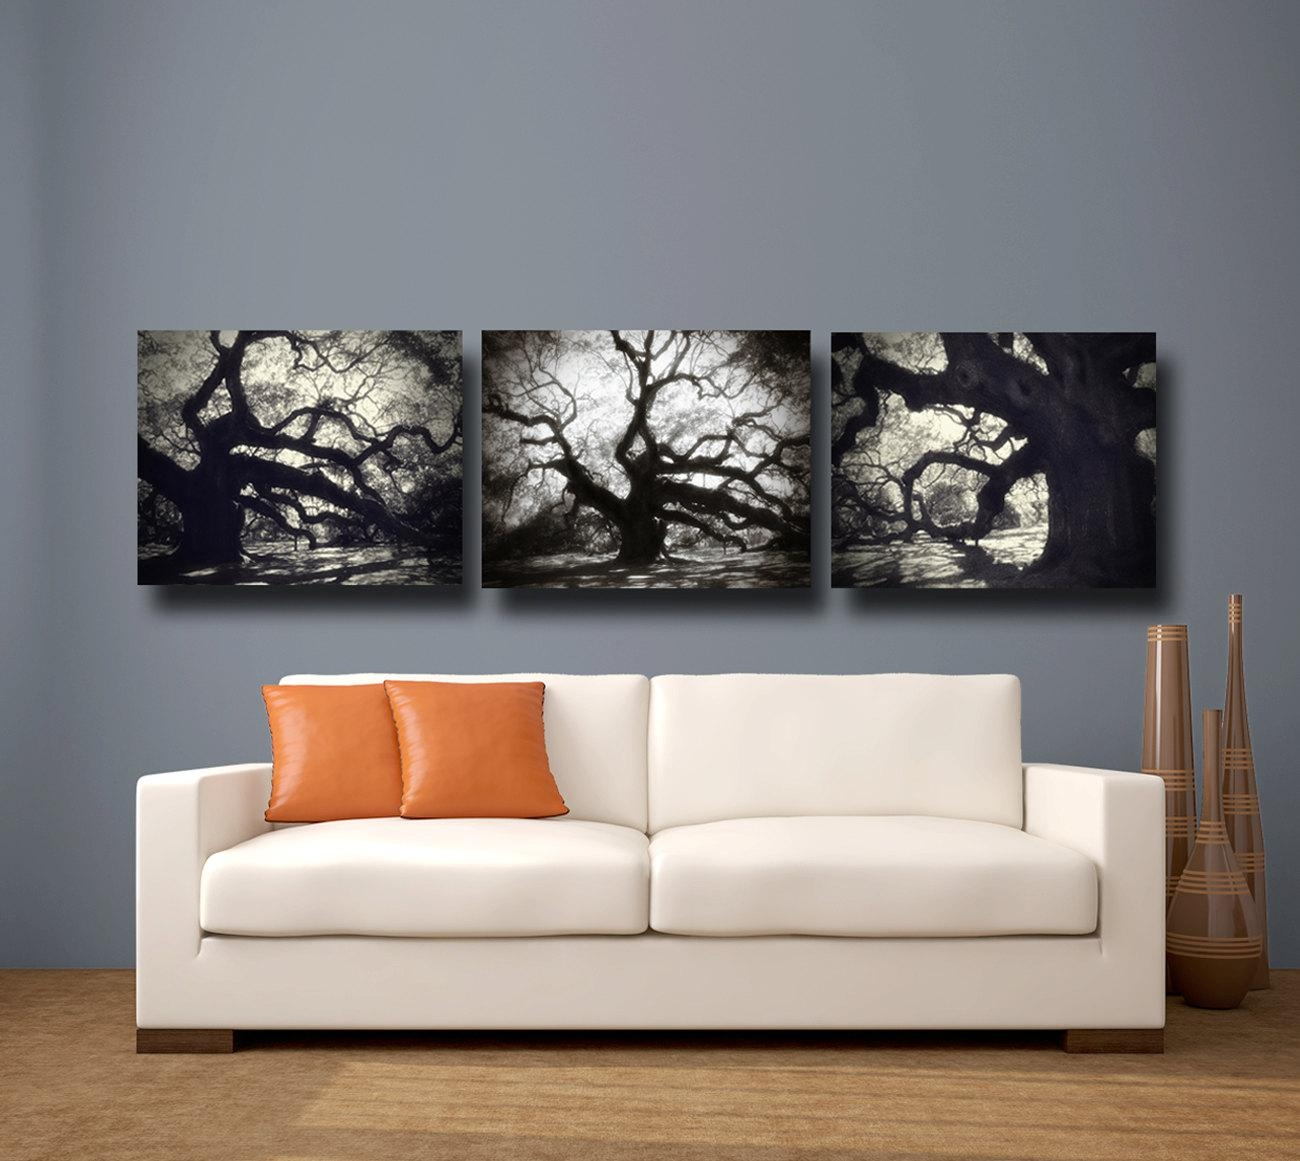 Black And White Wall Art Cute Photography Home Tips At Black And Intended For Black And White Wall Art Sets (Image 6 of 20)